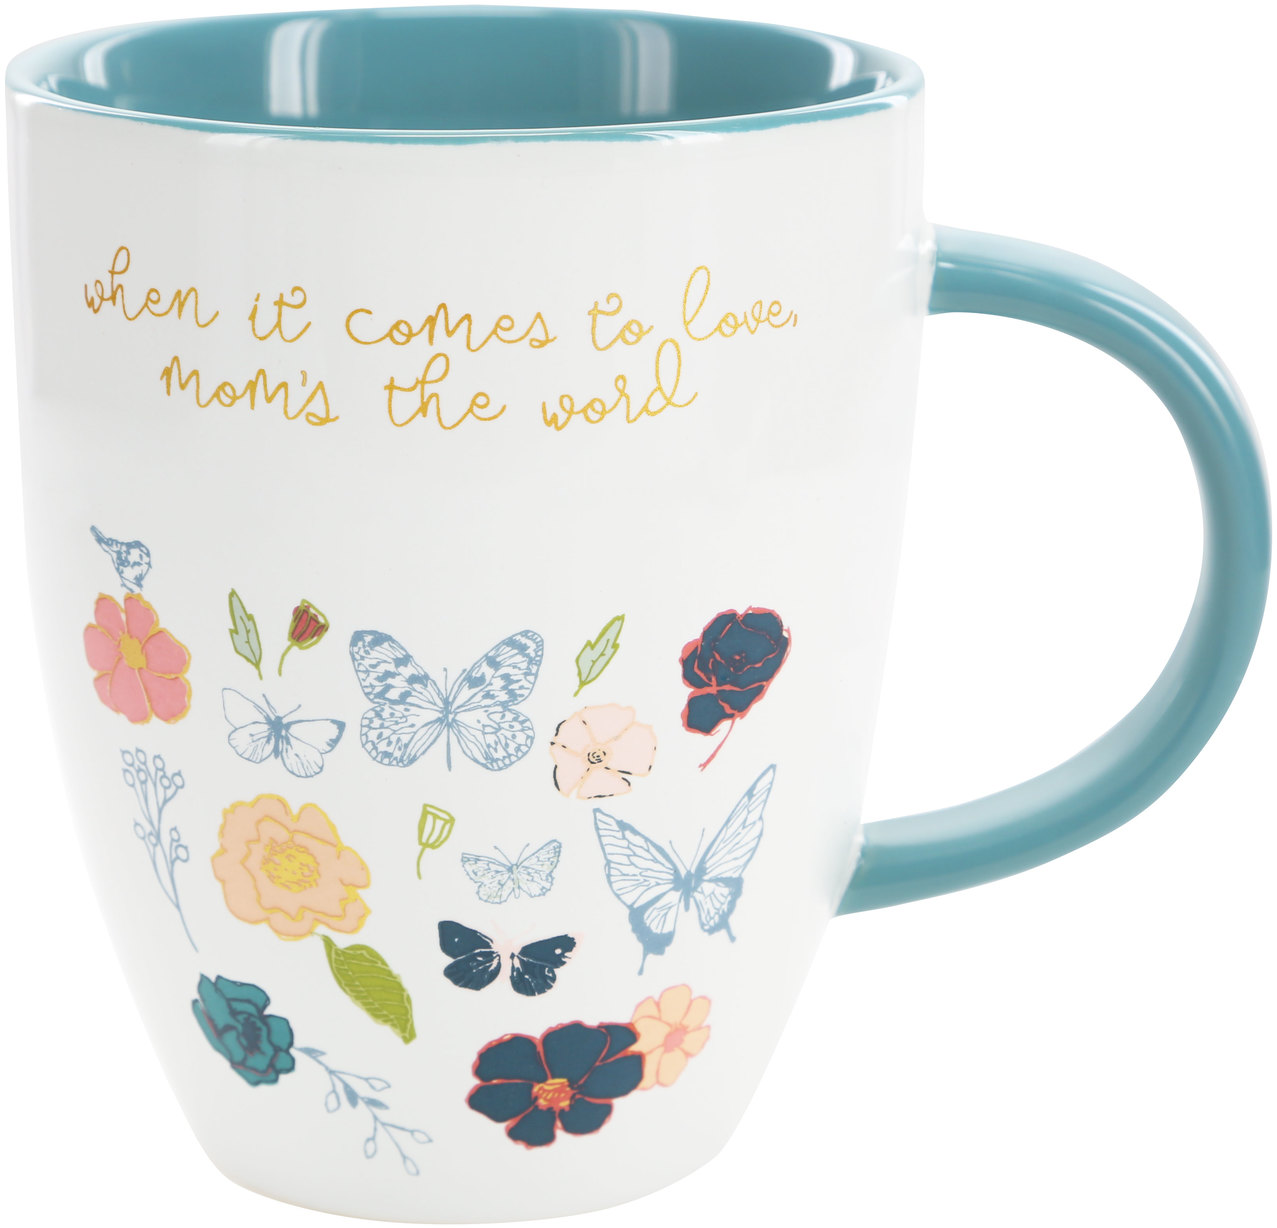 Mom's The Word by Heartful Love - Mom's The Word - 20 oz. Cup